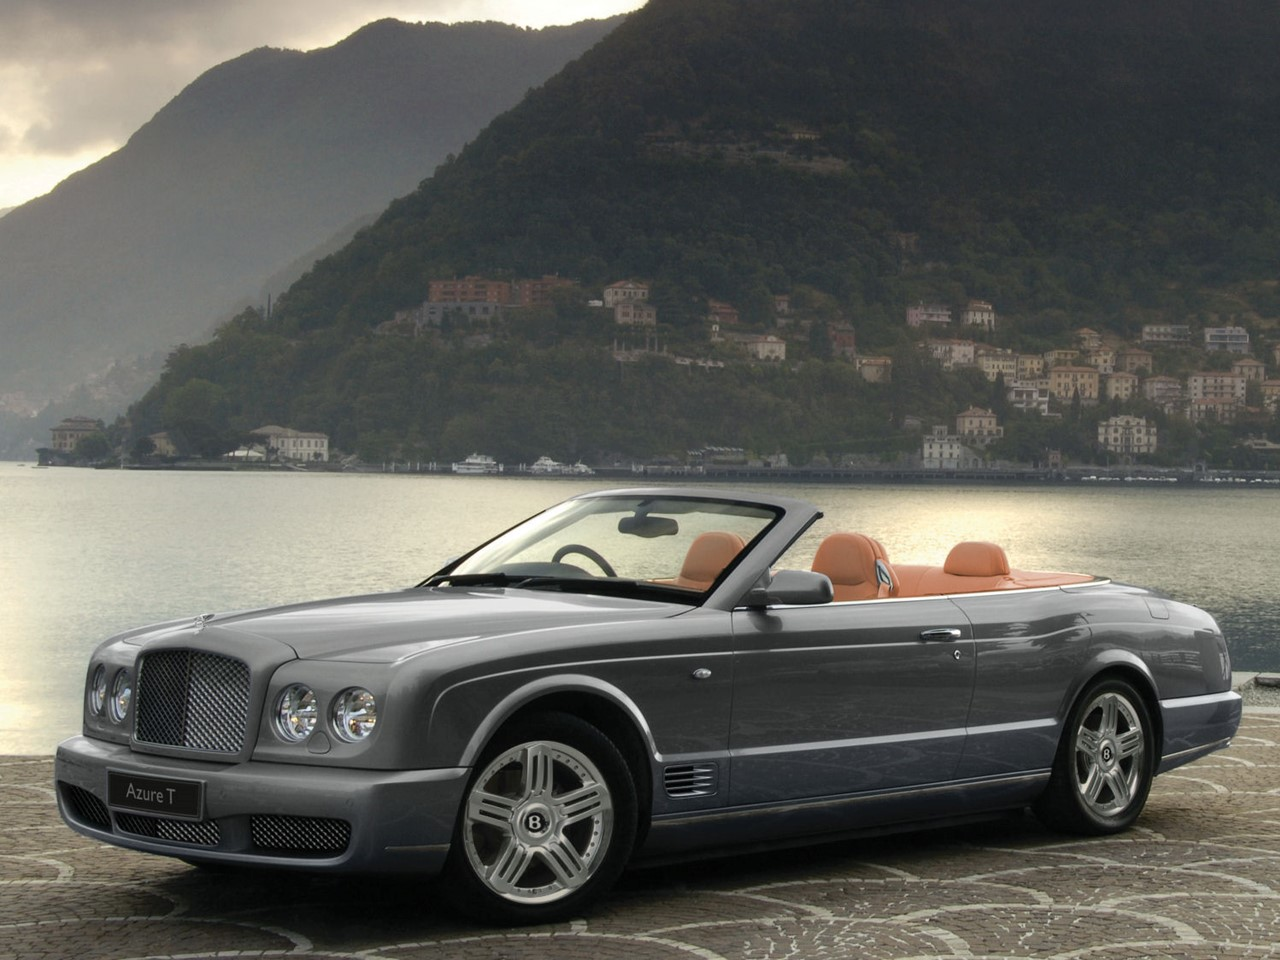 bentley-azure-t-1